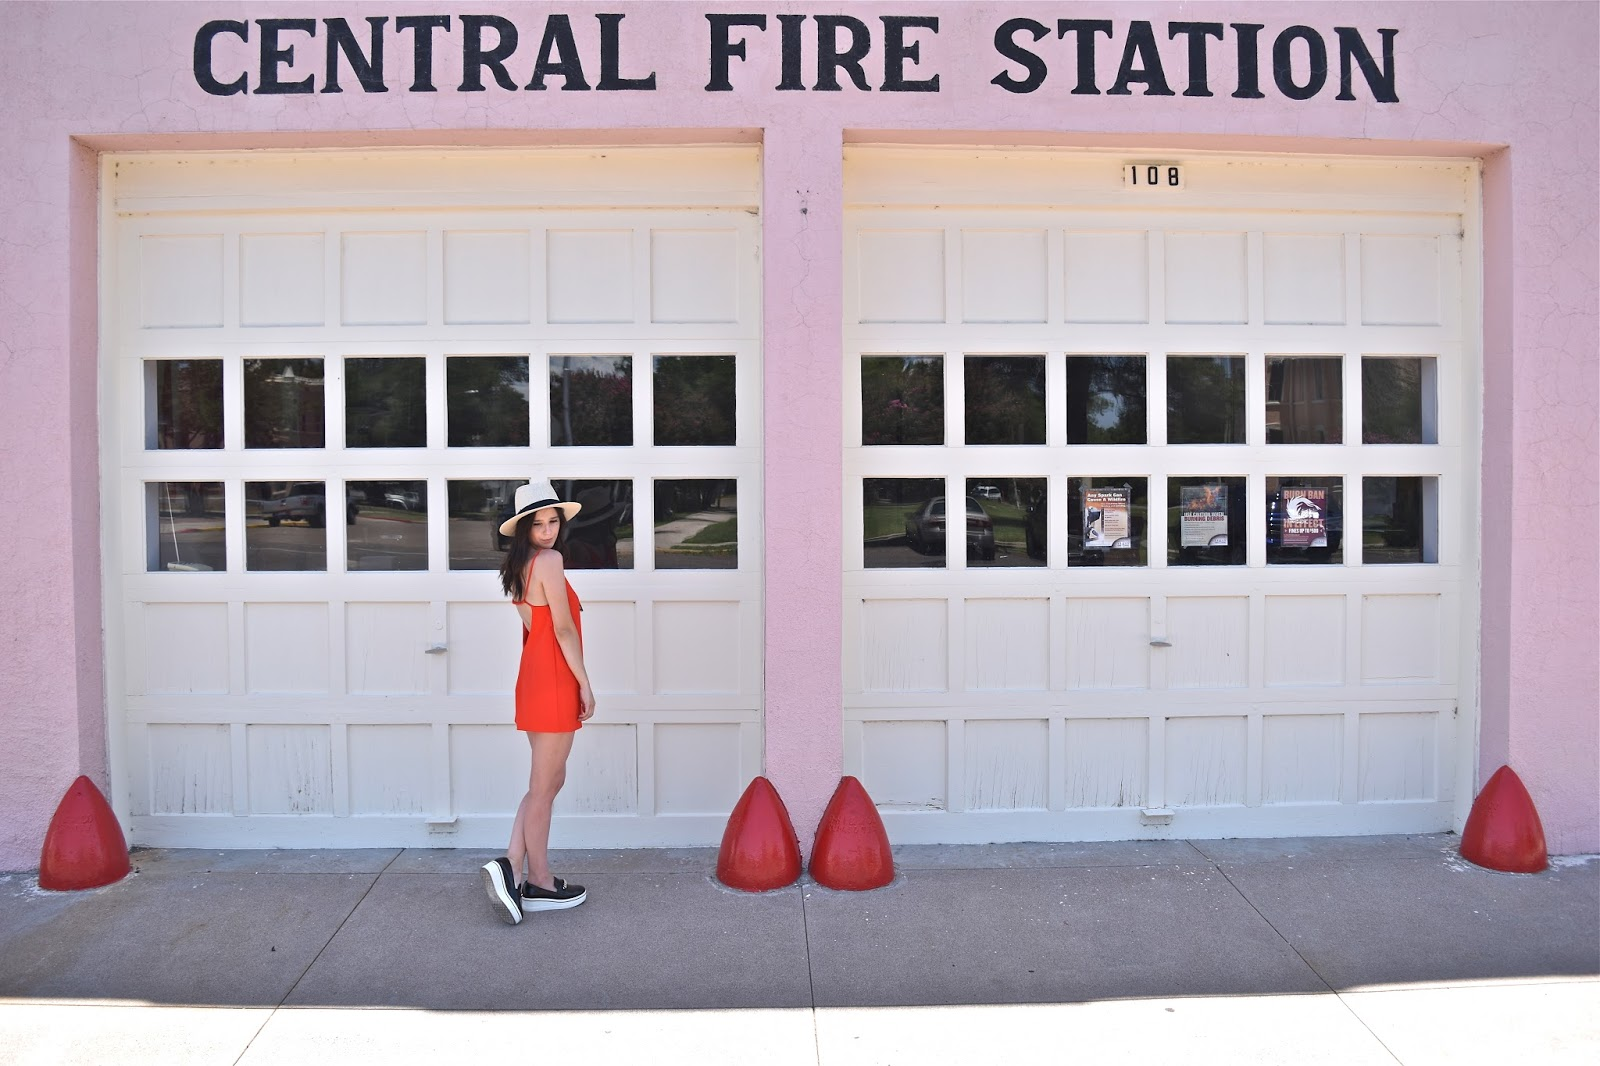 Central Fire Station in Marfa, Texas